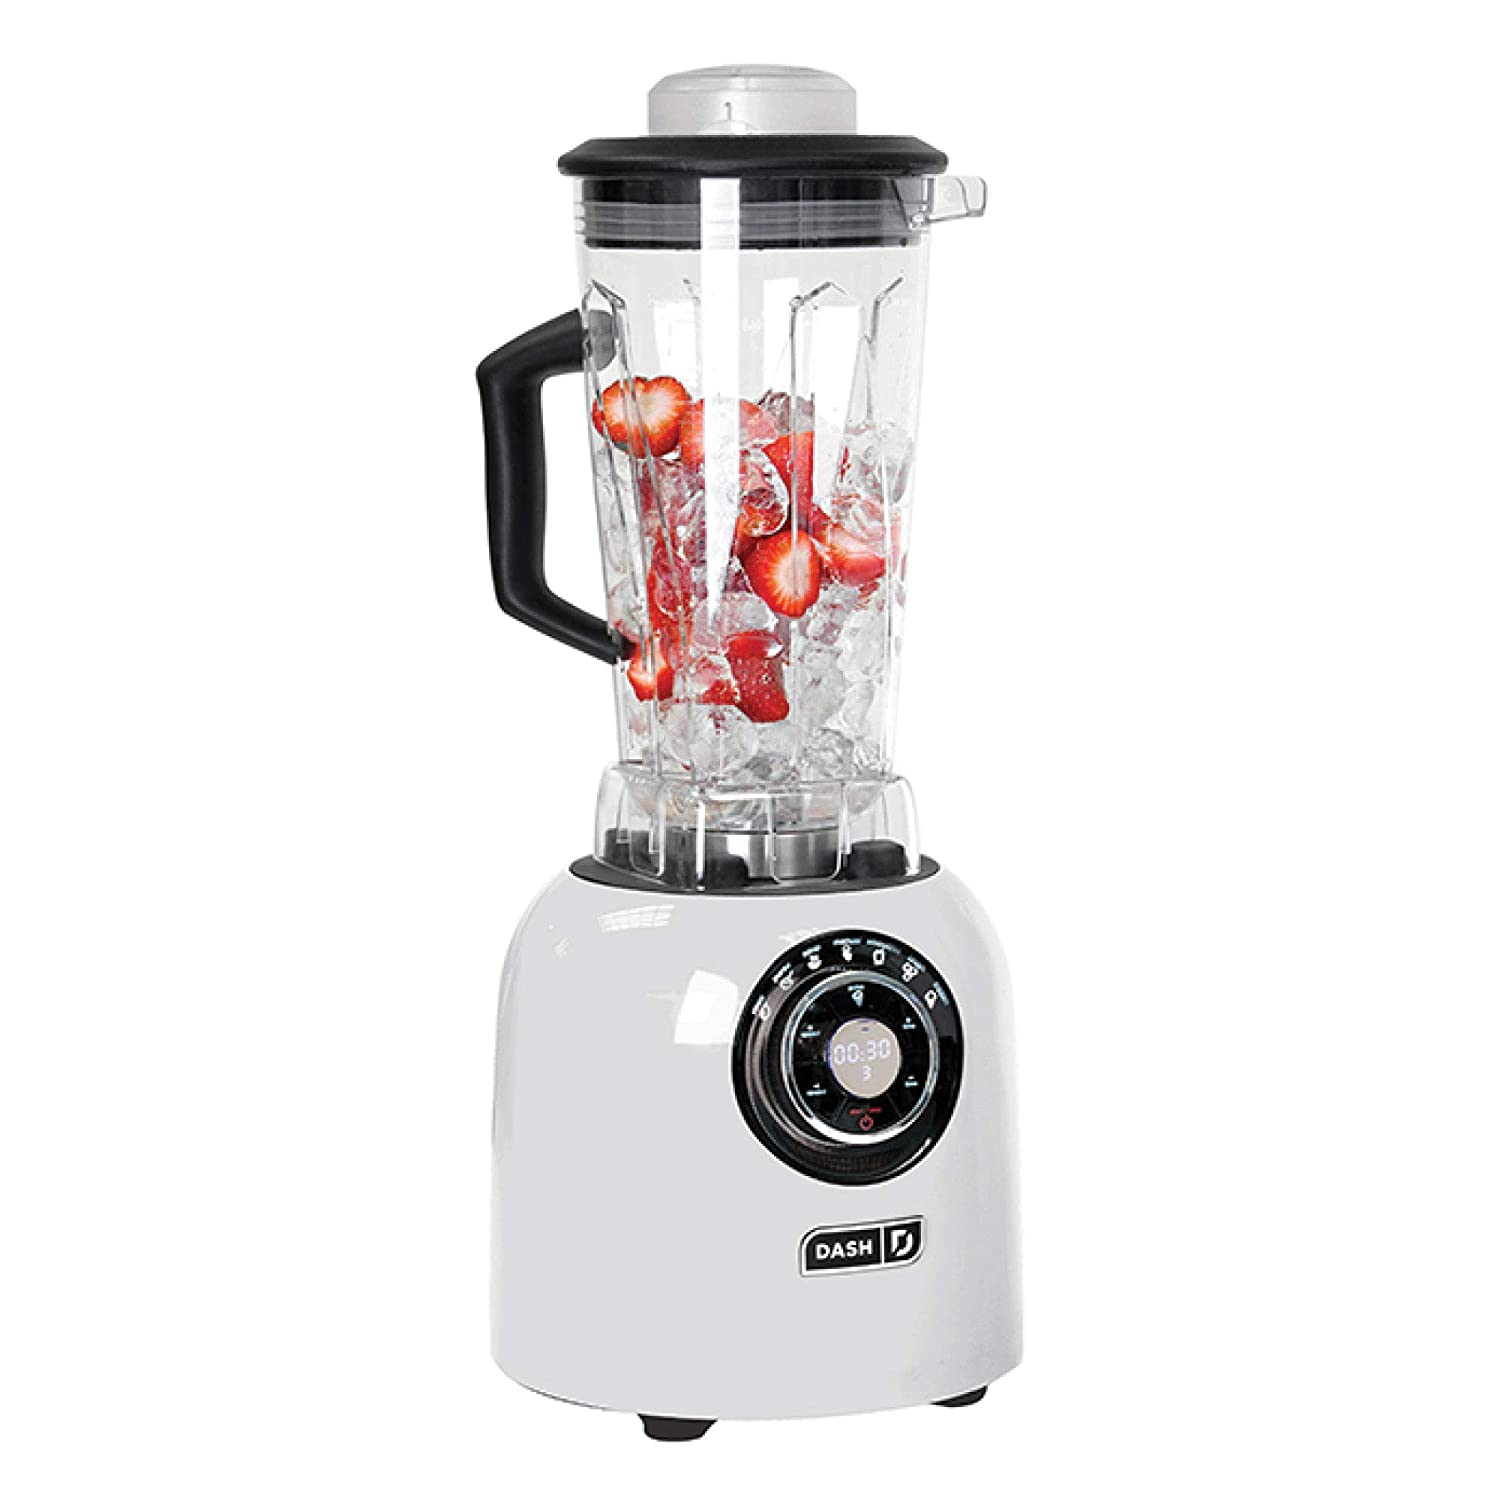 Dash DPB500WH with Sm with Stainless Steel Blades + Digital Display for Coffee Drinks, Frozen Cocktails, Smoothies, Soup, Fondue & More, 64 oz. White